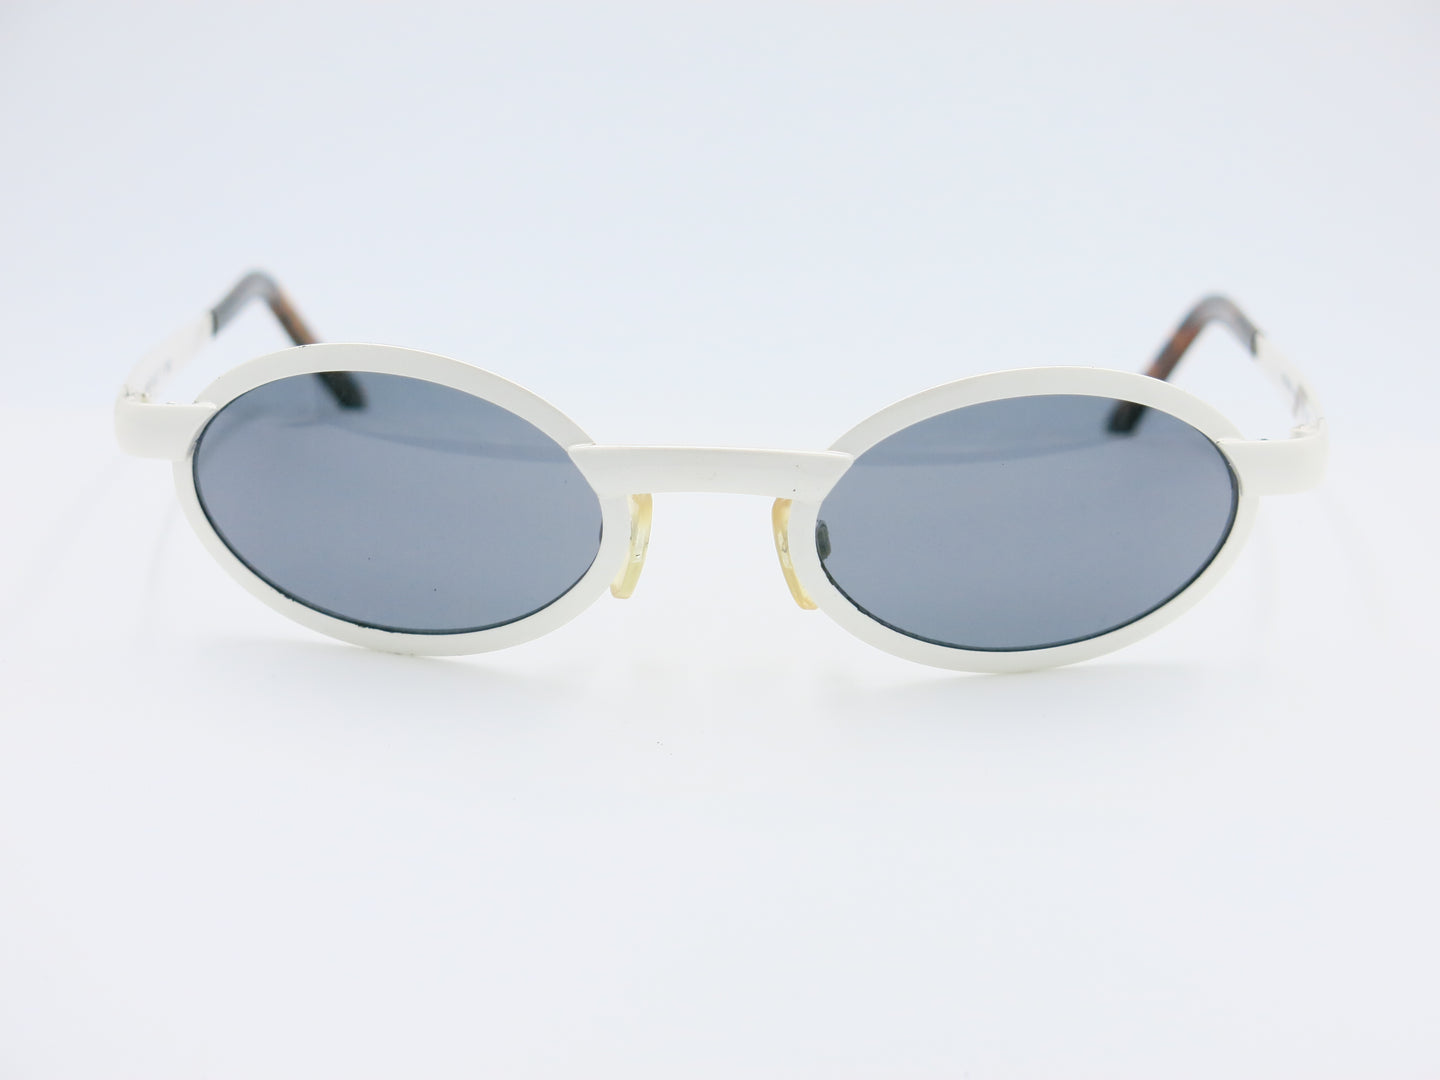 Killer Loop Sunglasses - K 0862 | Sunglasses by Killer Loop | Friedman & Sons